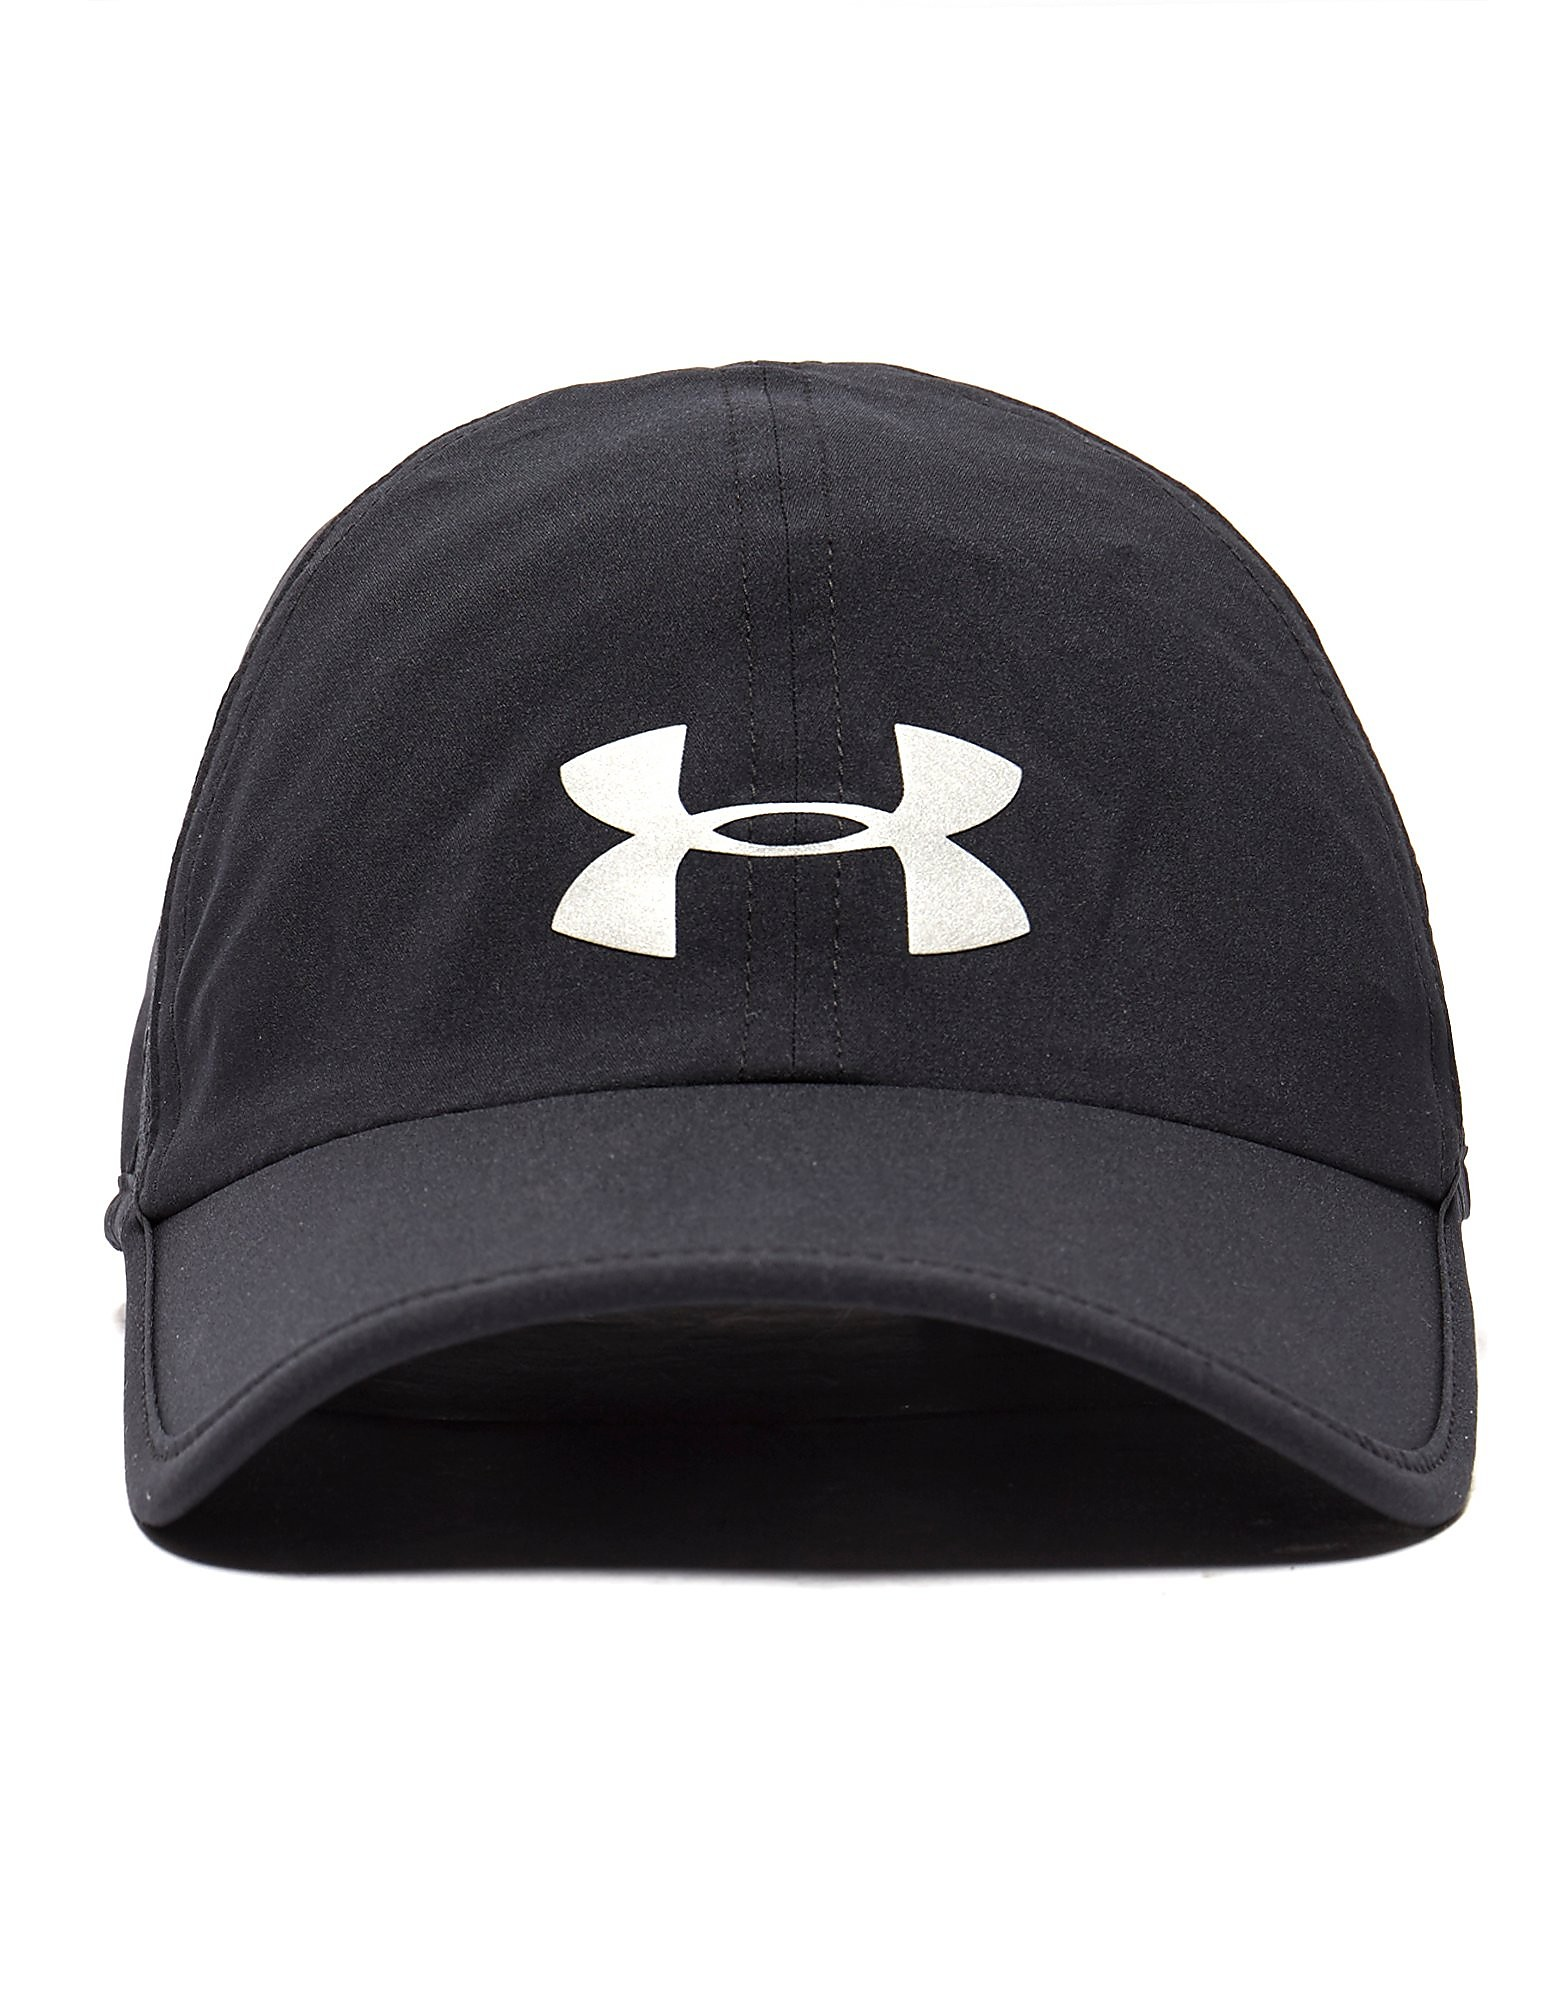 Under Armour Shadow Pet 4.0